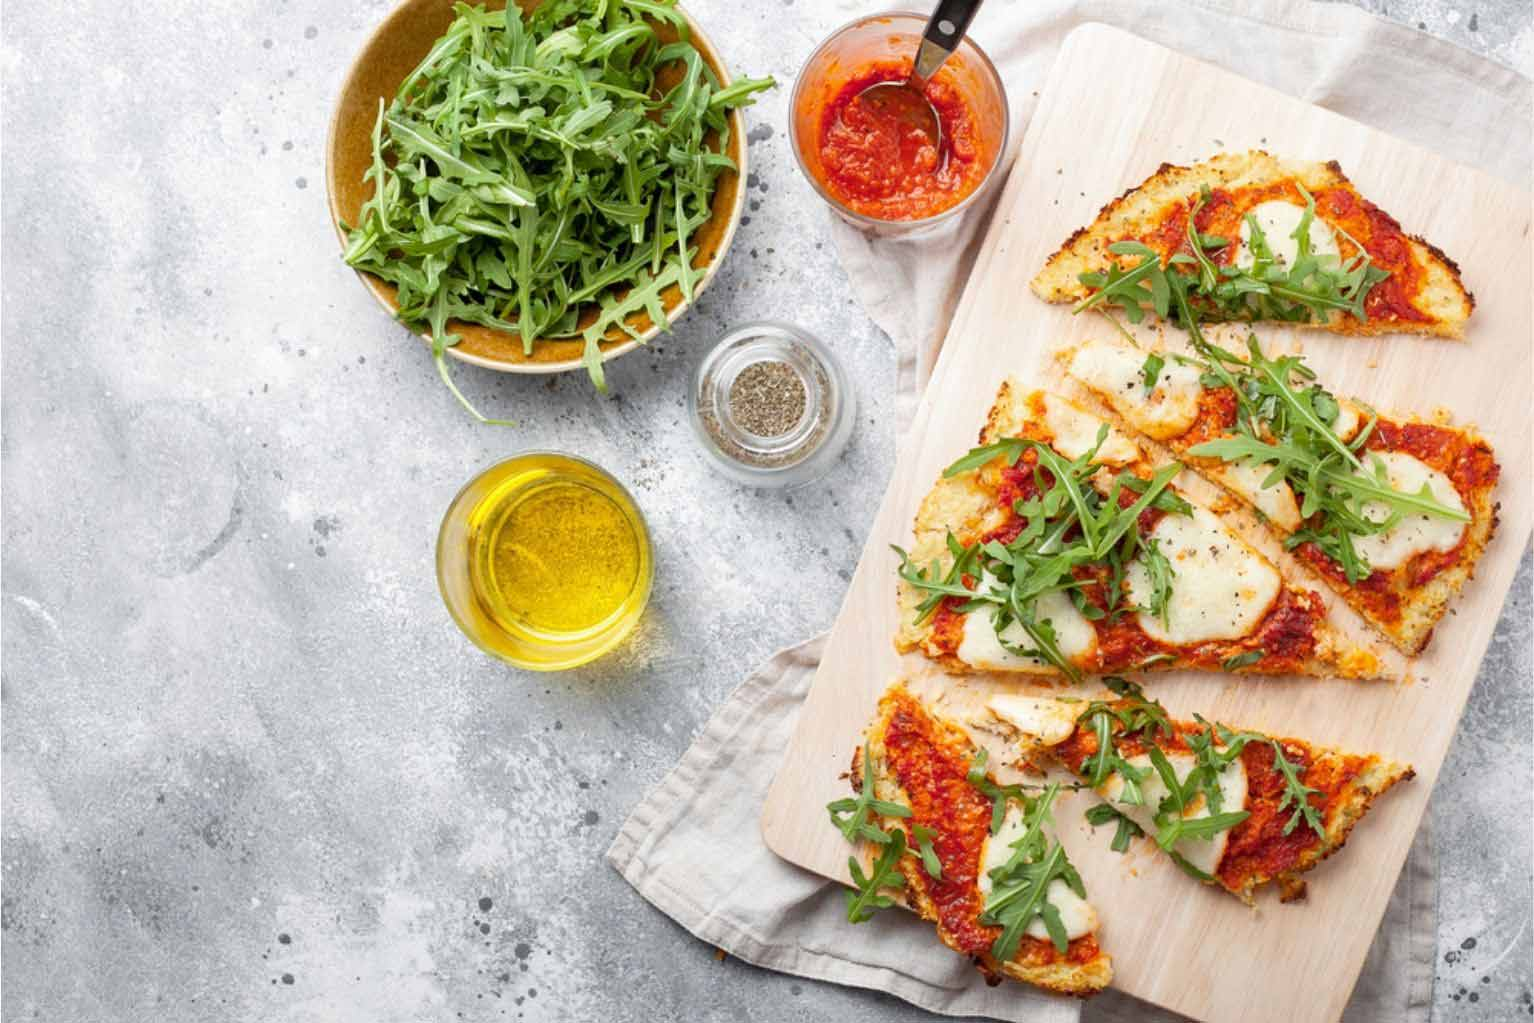 Mozzarella pizza with cauliflower crust on a wooden cutting board next to oil, pizza sauce, and arugula on a white table.